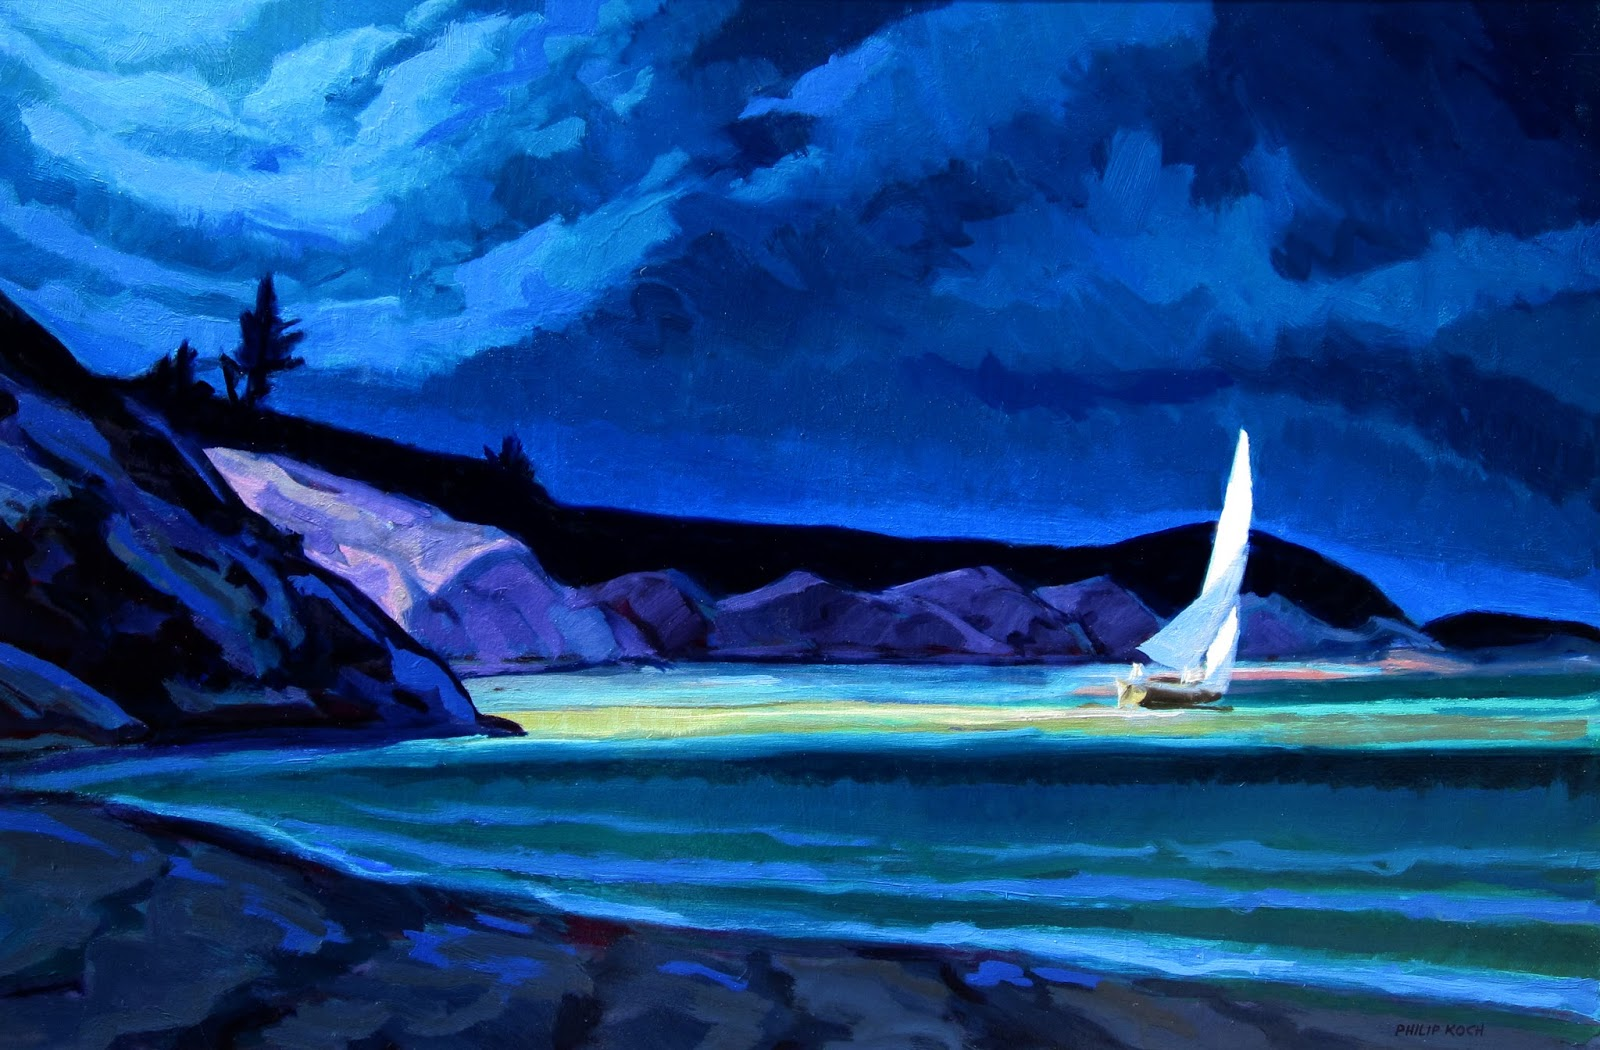 Philip Koch Paintings Sailing Lessons From Edward Hopper